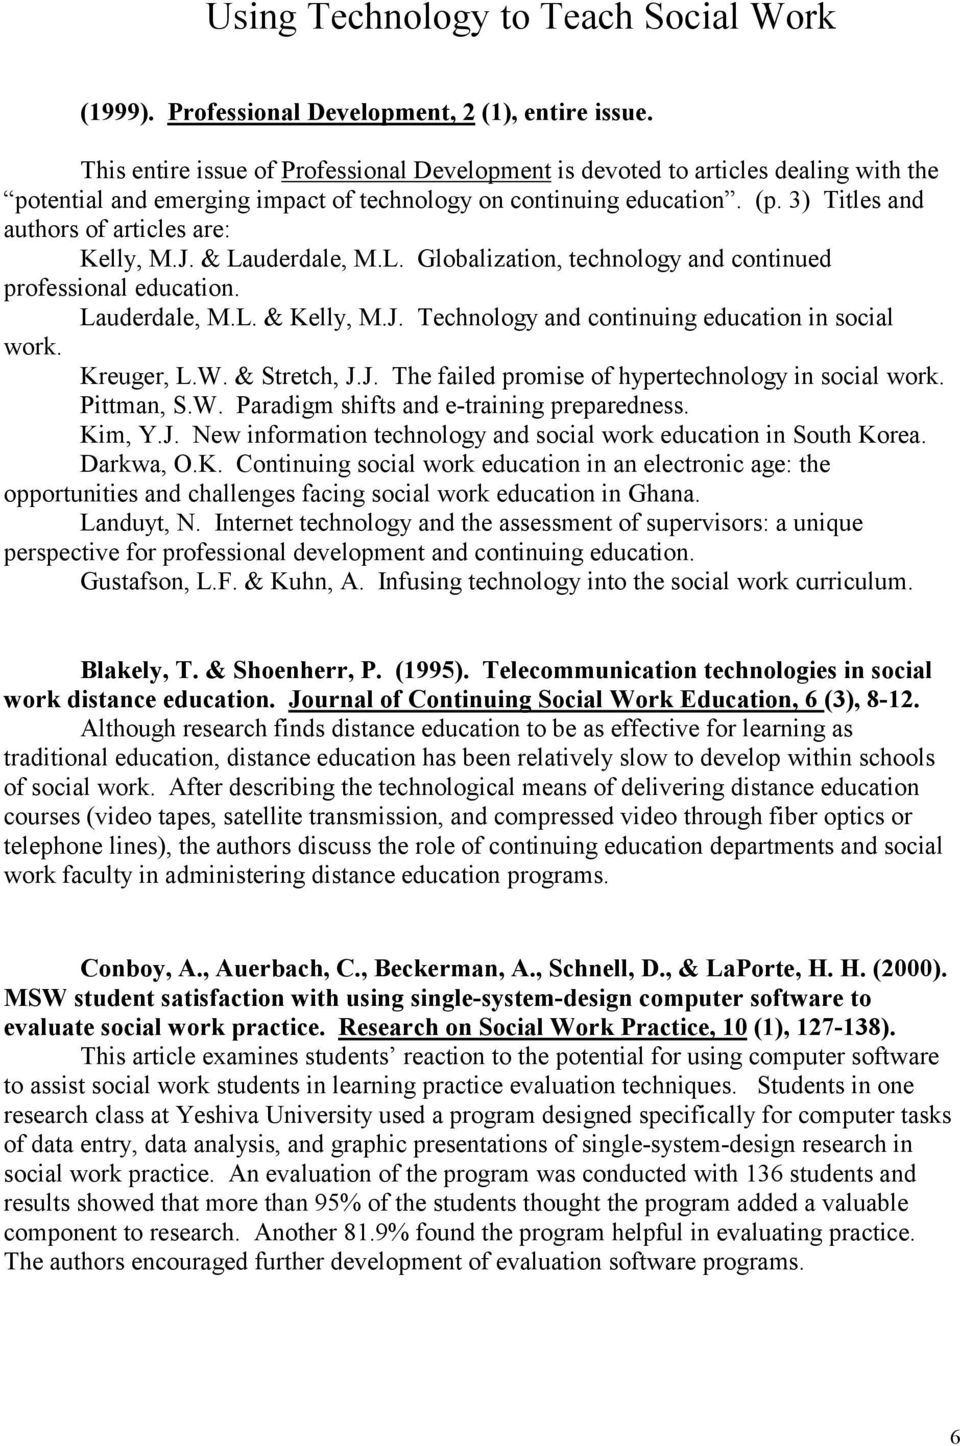 3) Titles and authors of articles are: Kelly, M.J. & Lauderdale, M.L. Globalization, technology and continued professional education. Lauderdale, M.L. & Kelly, M.J. Technology and continuing education in social work.